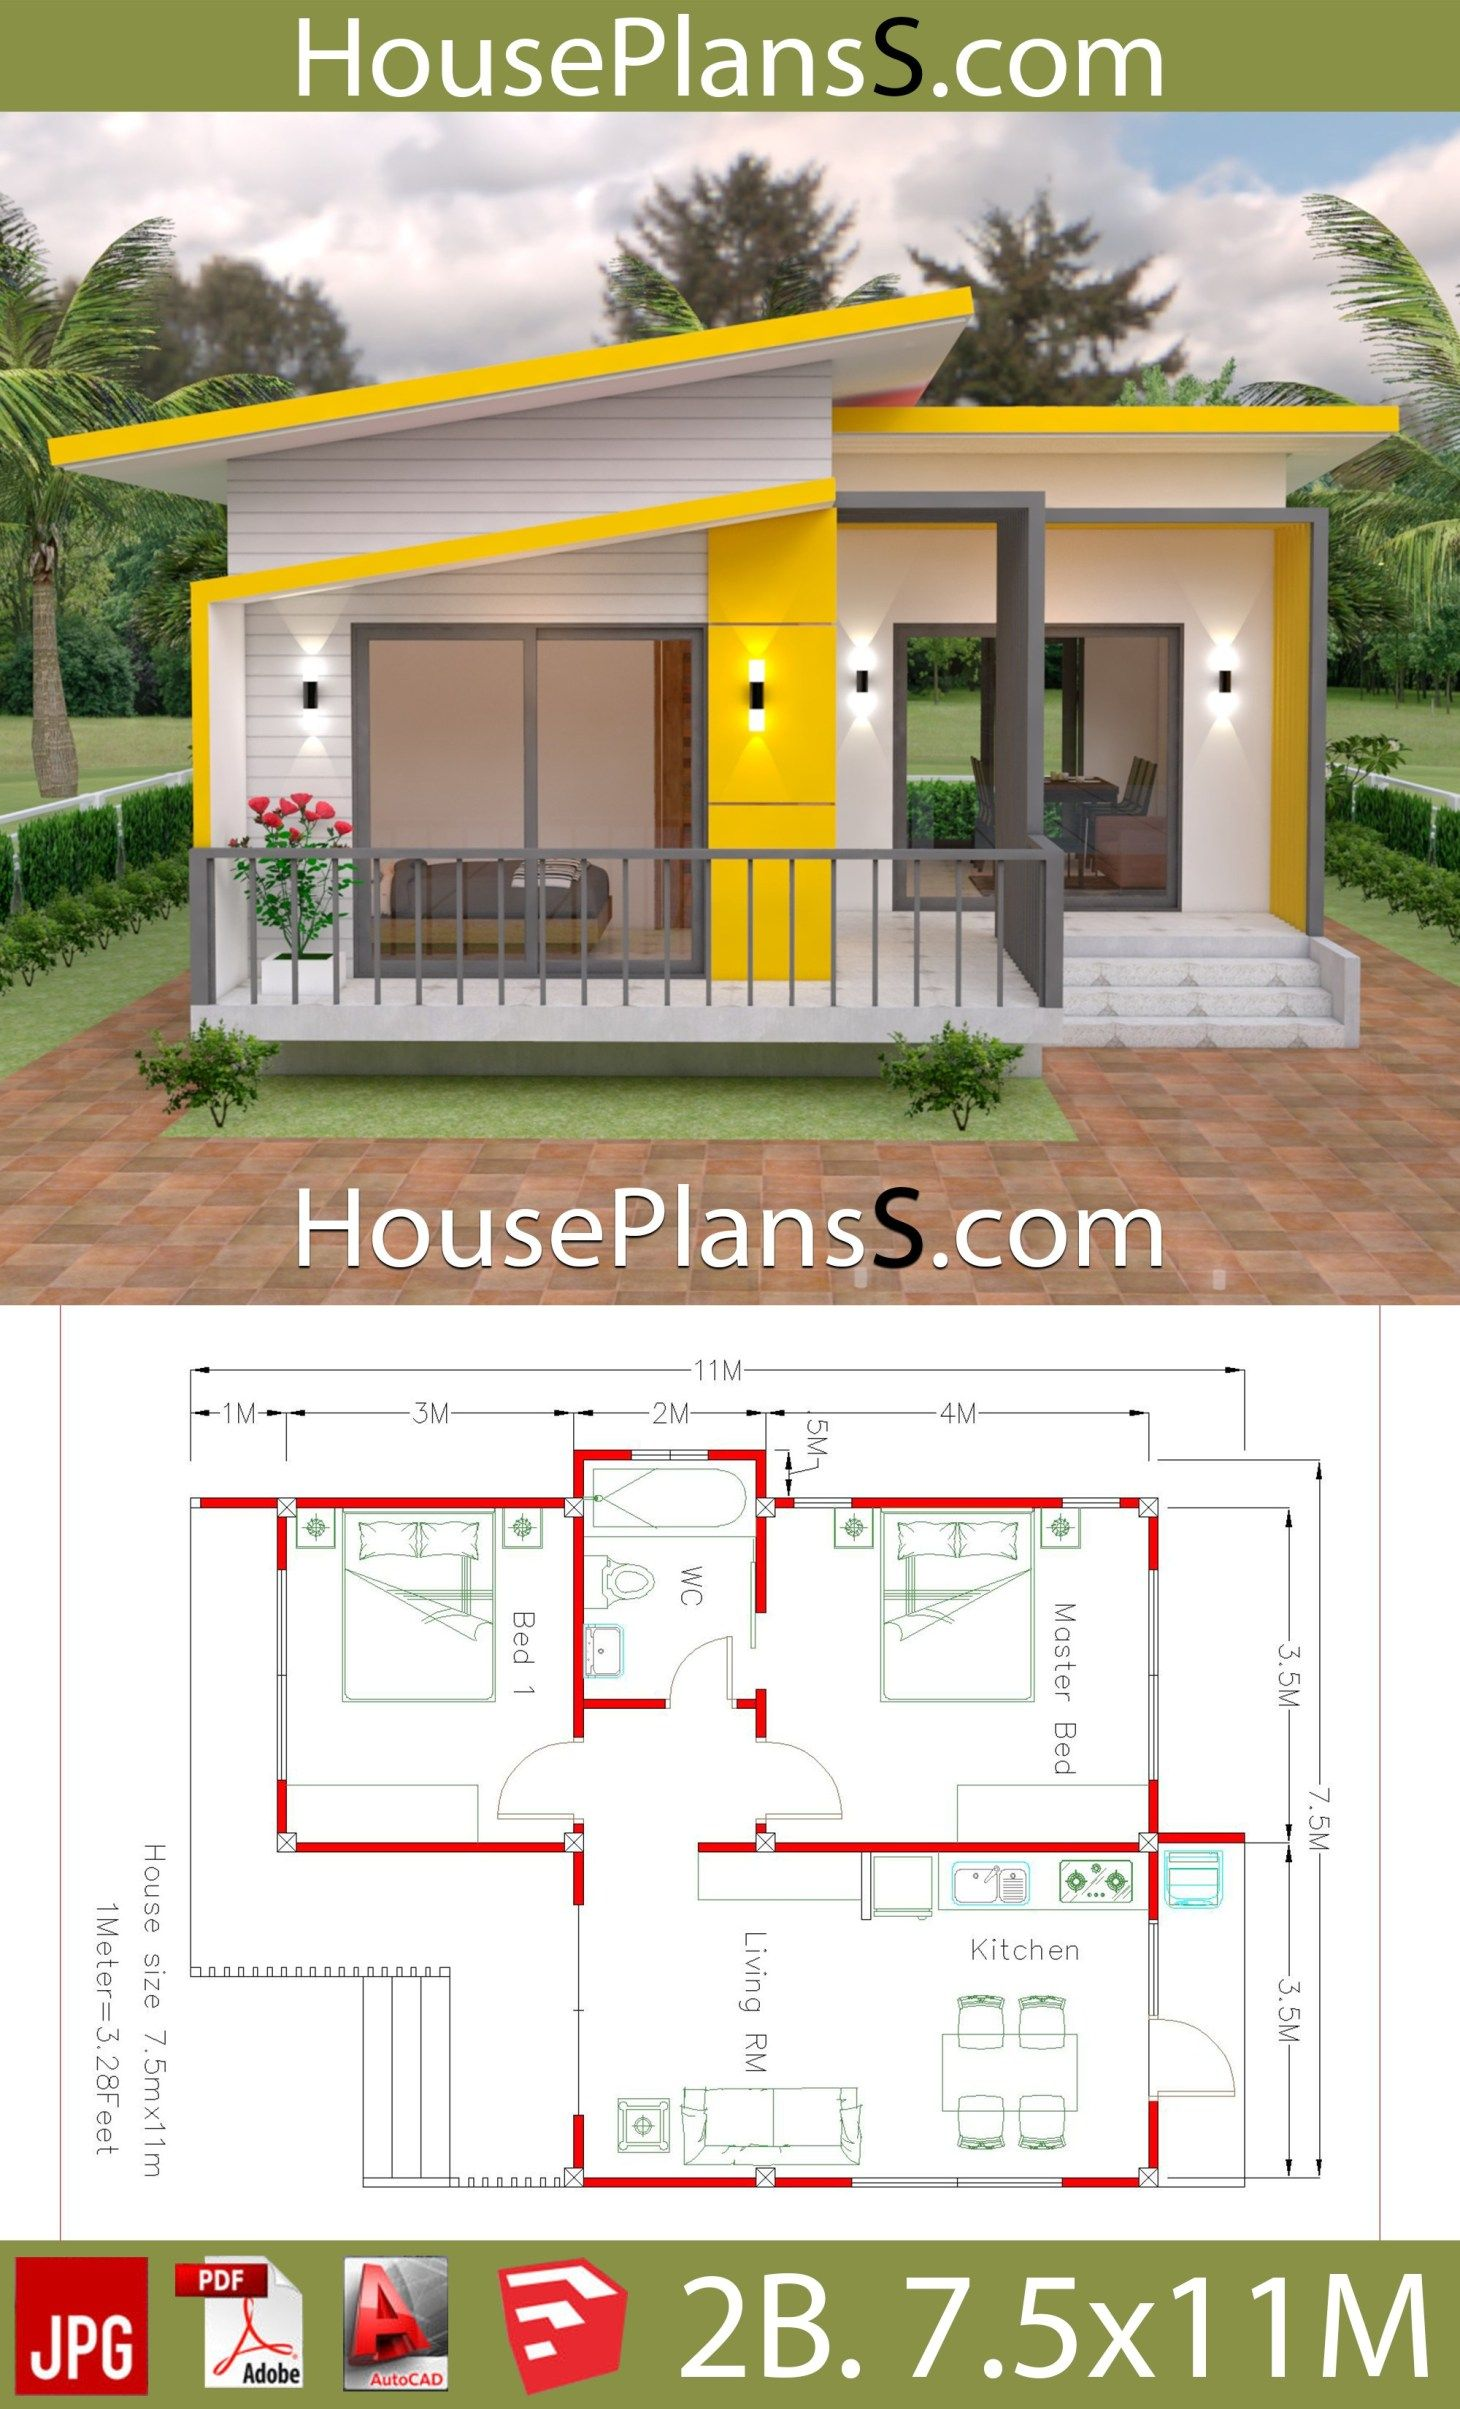 House Plans 7 5x11 With 2 Bedrooms Full Plans House Plans 3d Small House Design House Plans Small House Layout